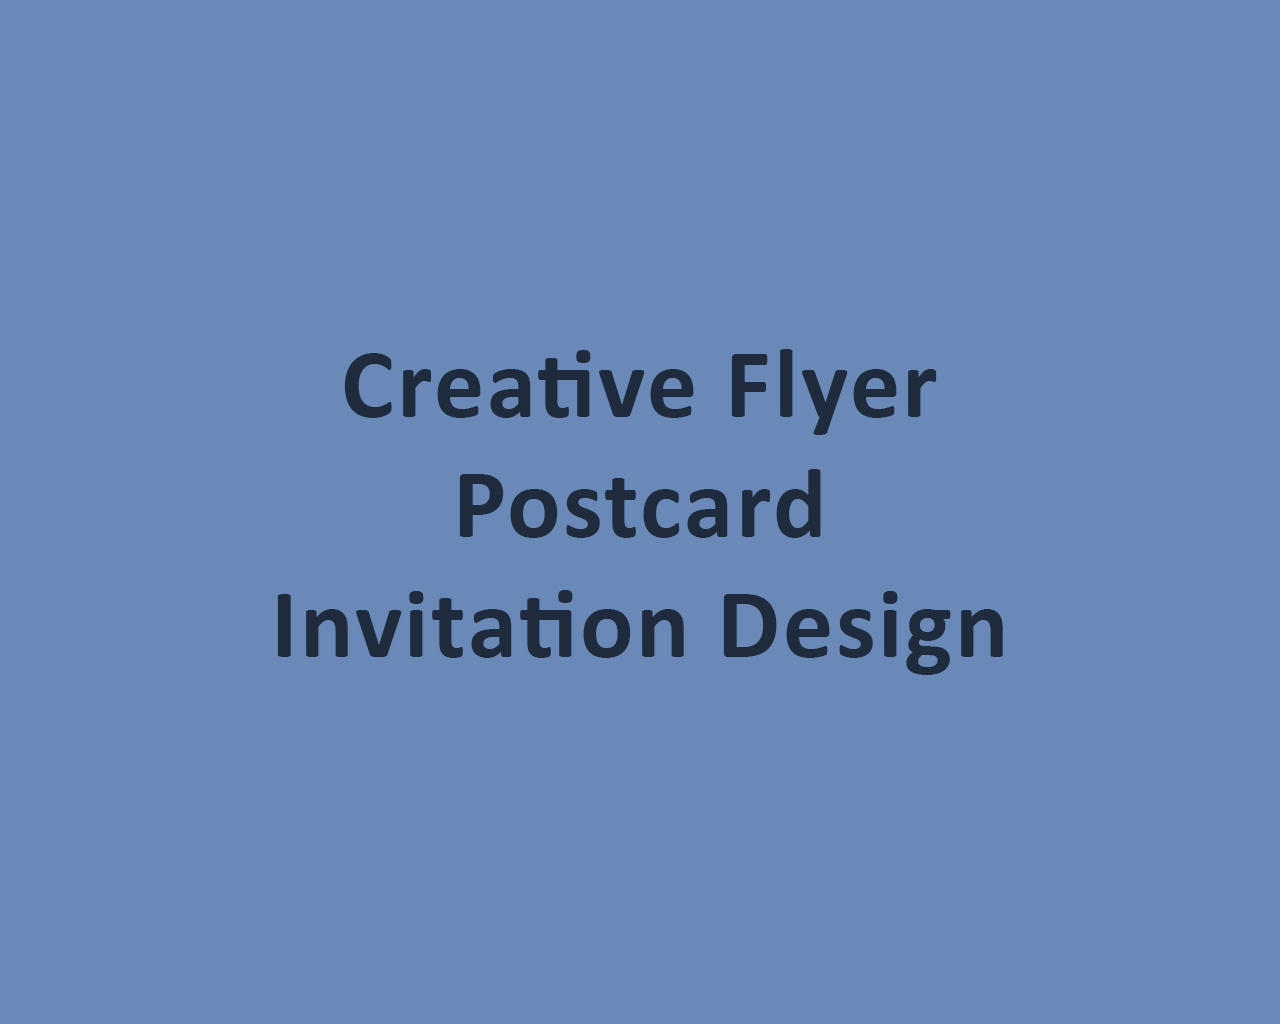 Creative Flyer / Postcard / Invitation Design by odiusfly - 105975